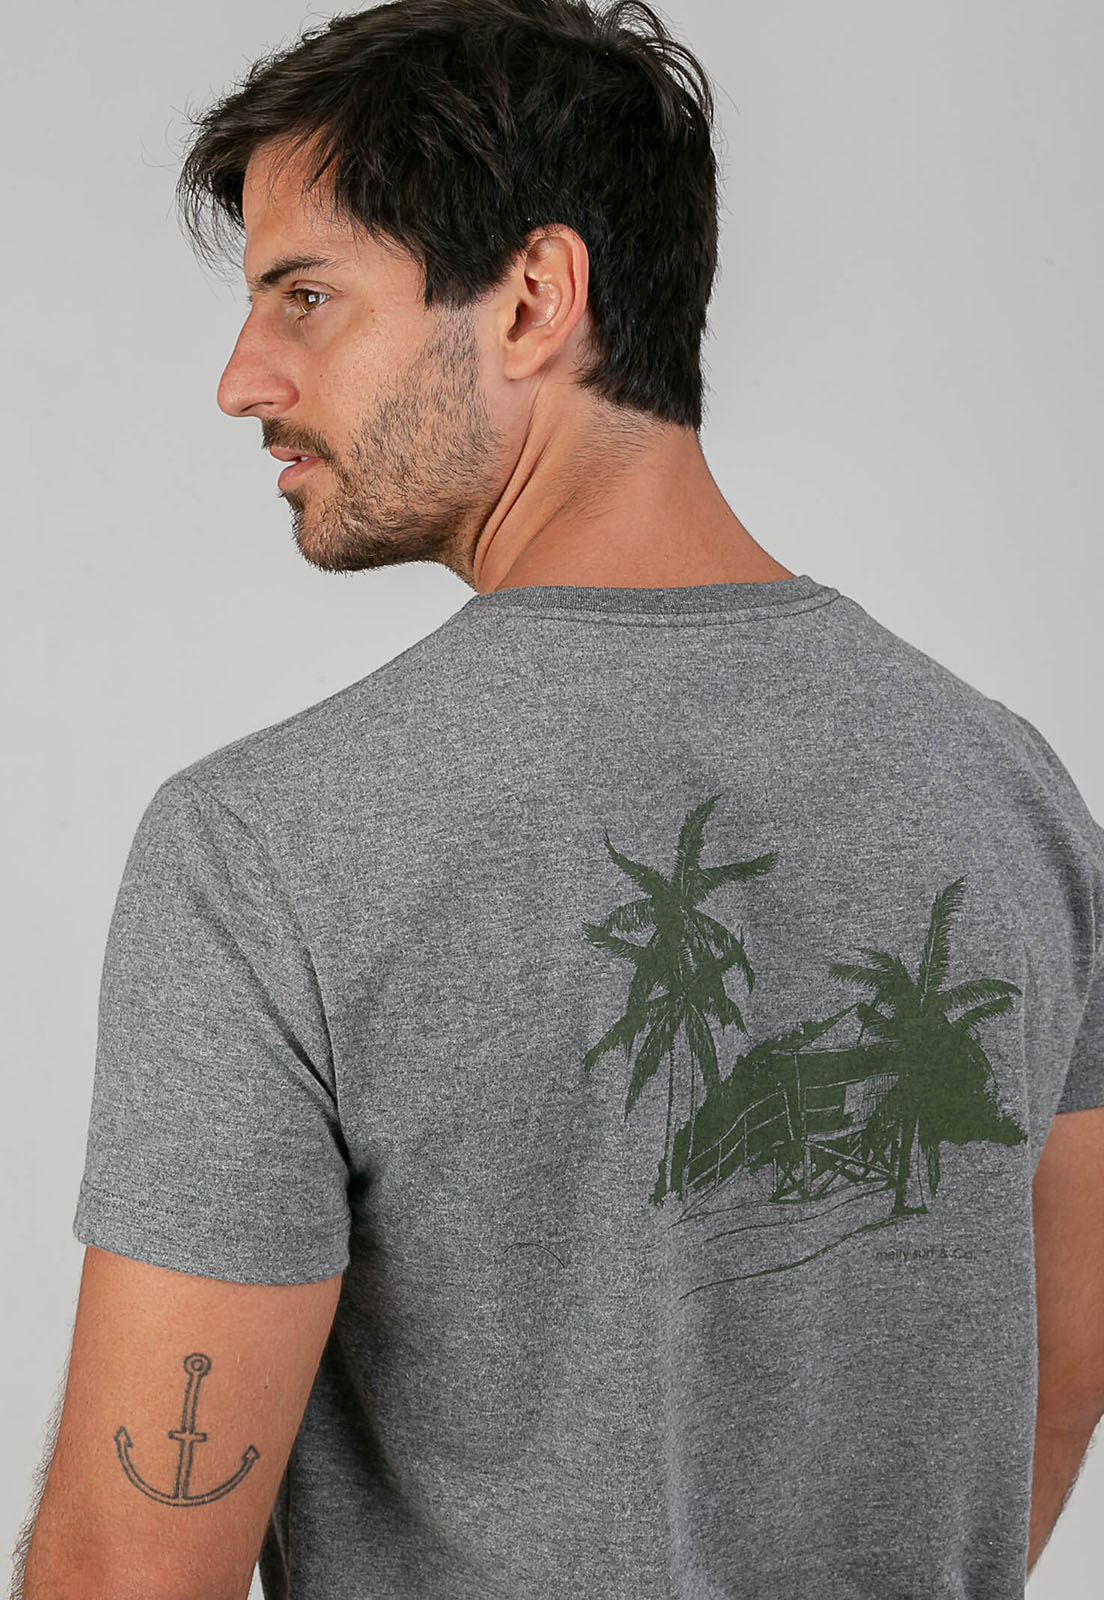 T-Shirt Friends Brigade mescla melty  - melty surf & Co.